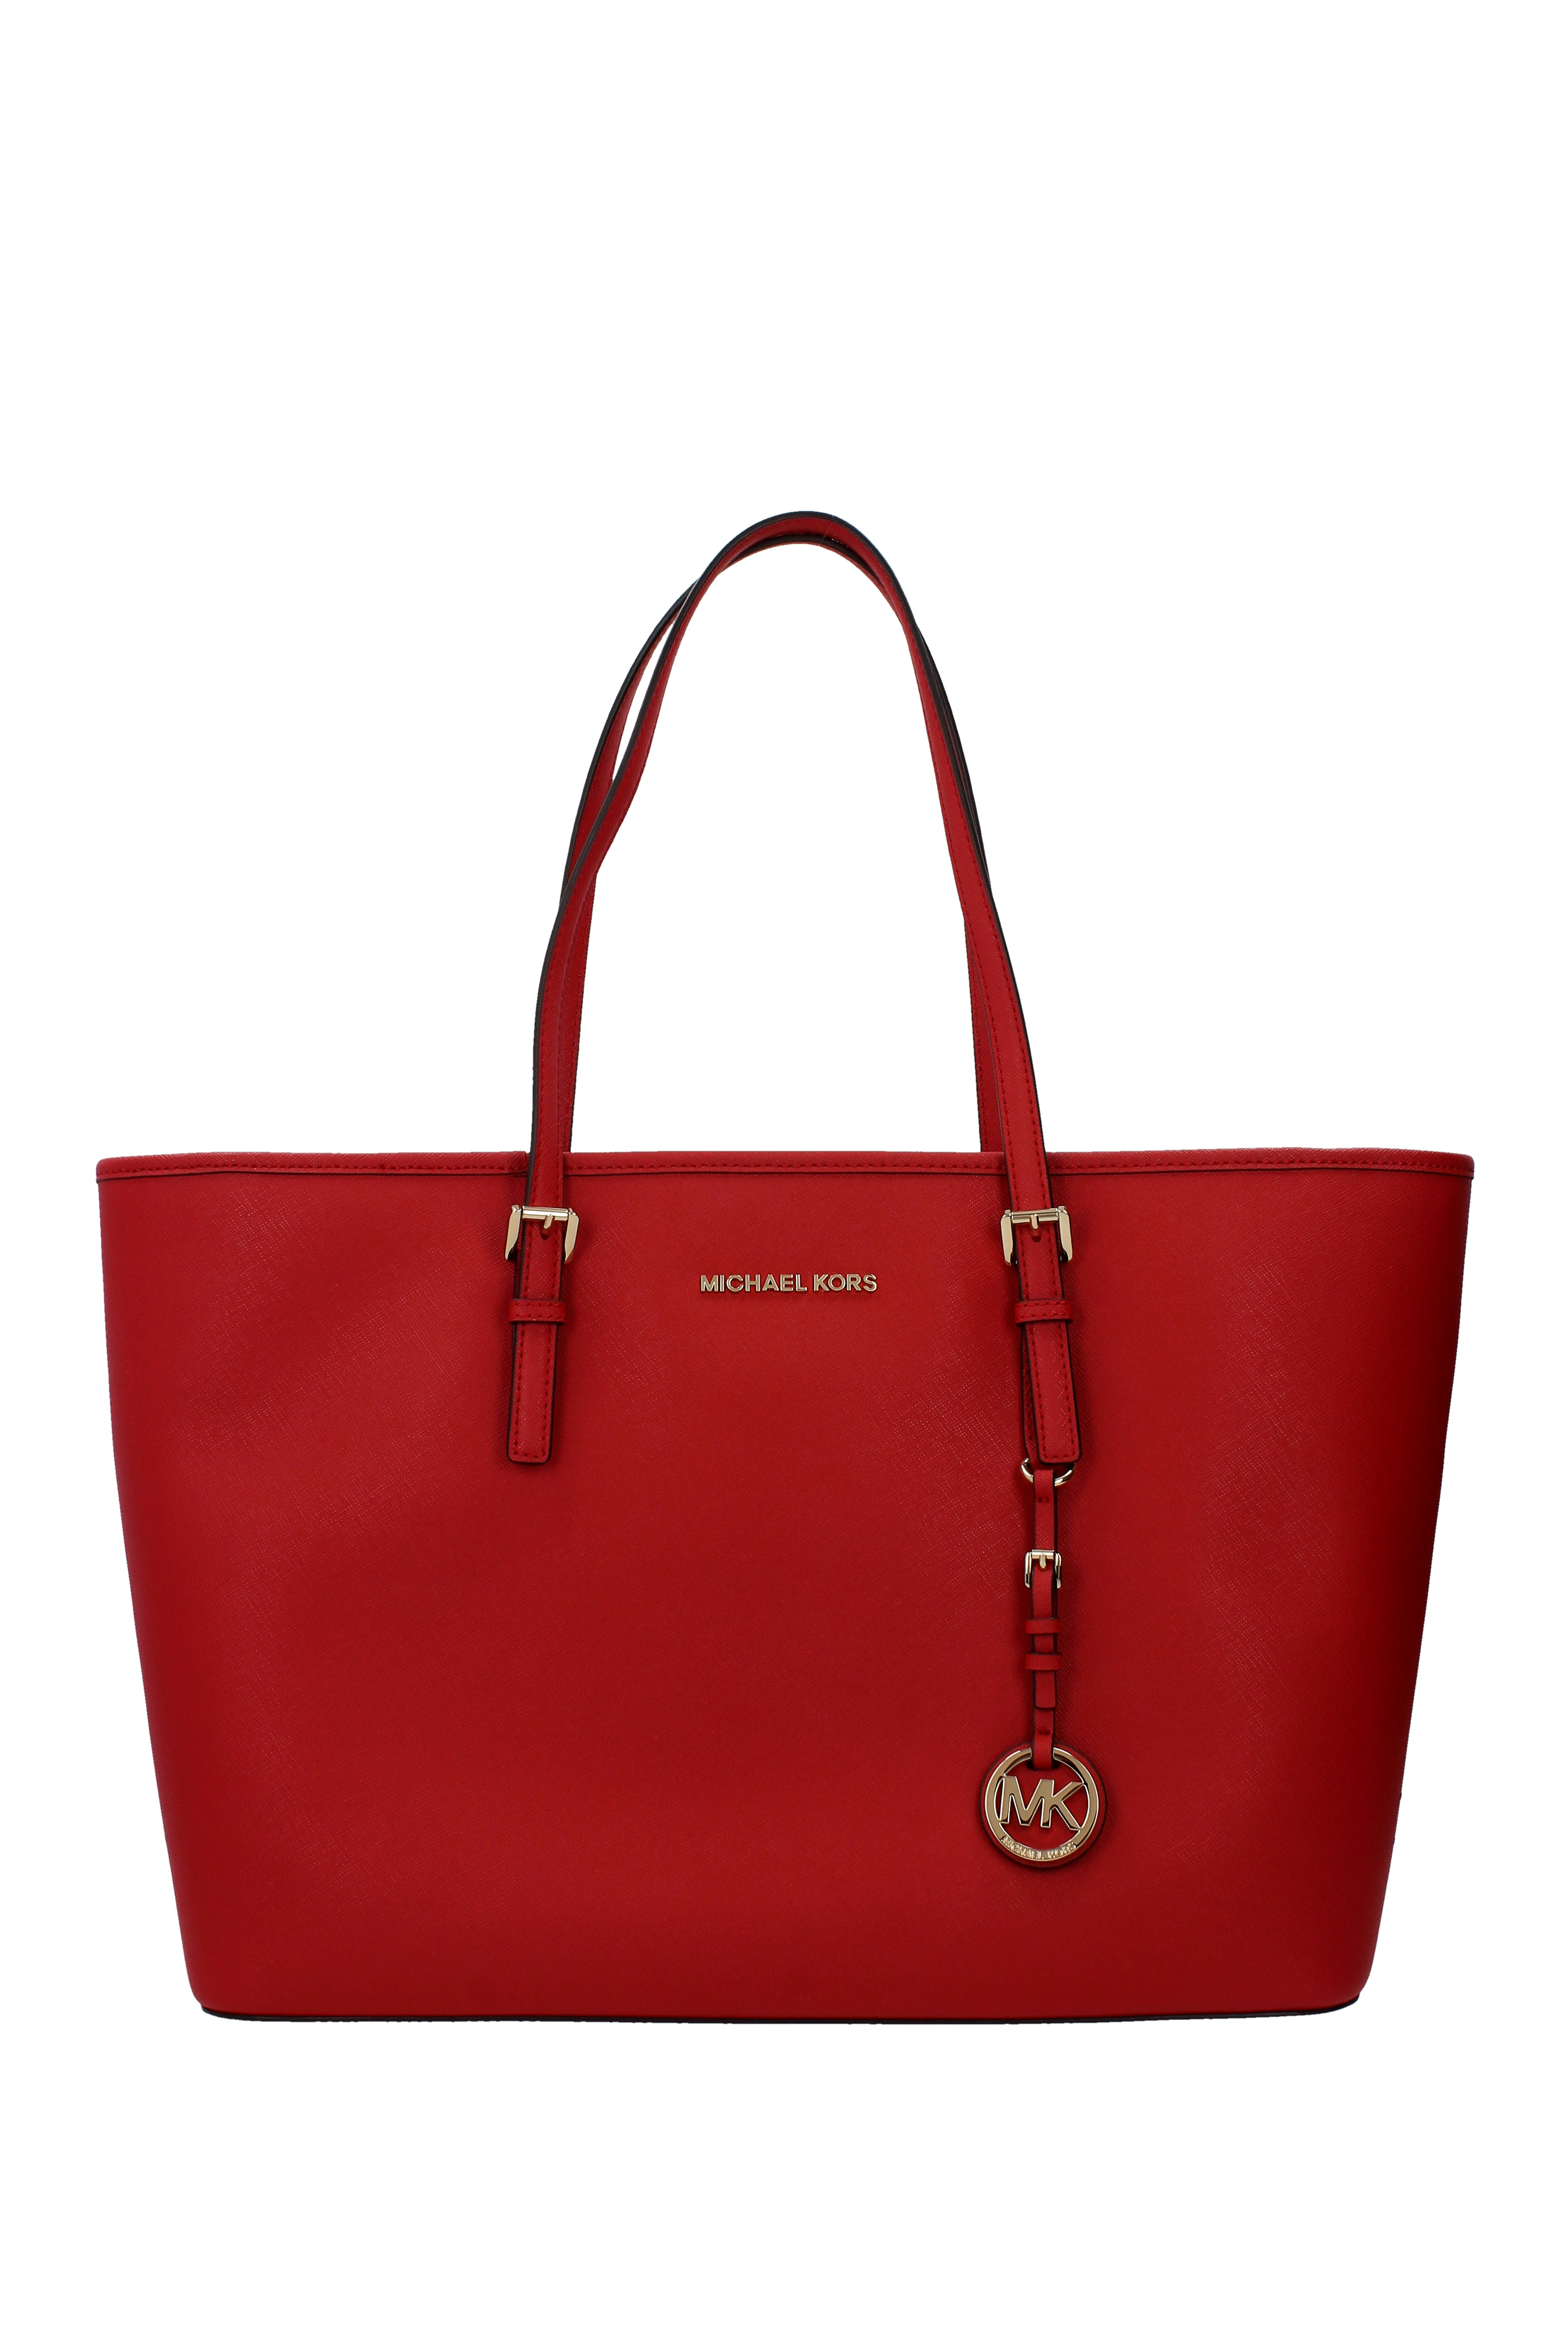 Borse a spalla michael kors jet set travel md donna for Borse michael kors ebay